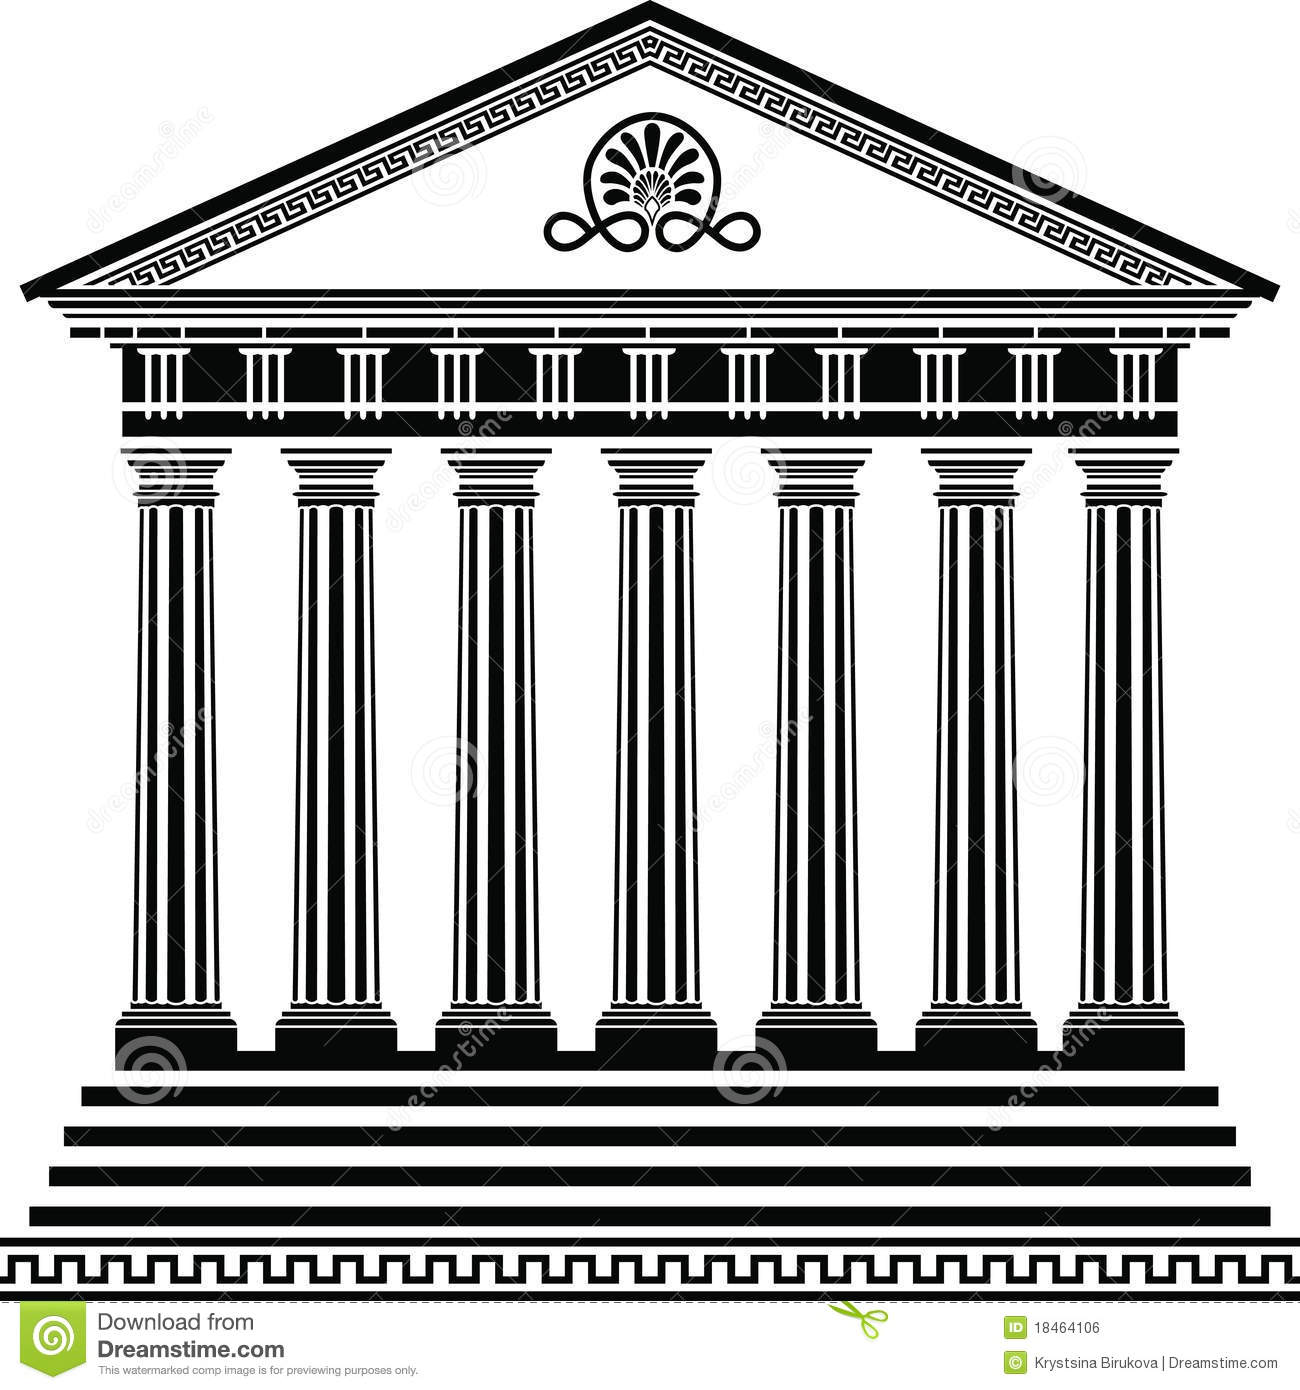 Greek building clipart picture stock Greek Buildings Clipart - Clipart Kid picture stock